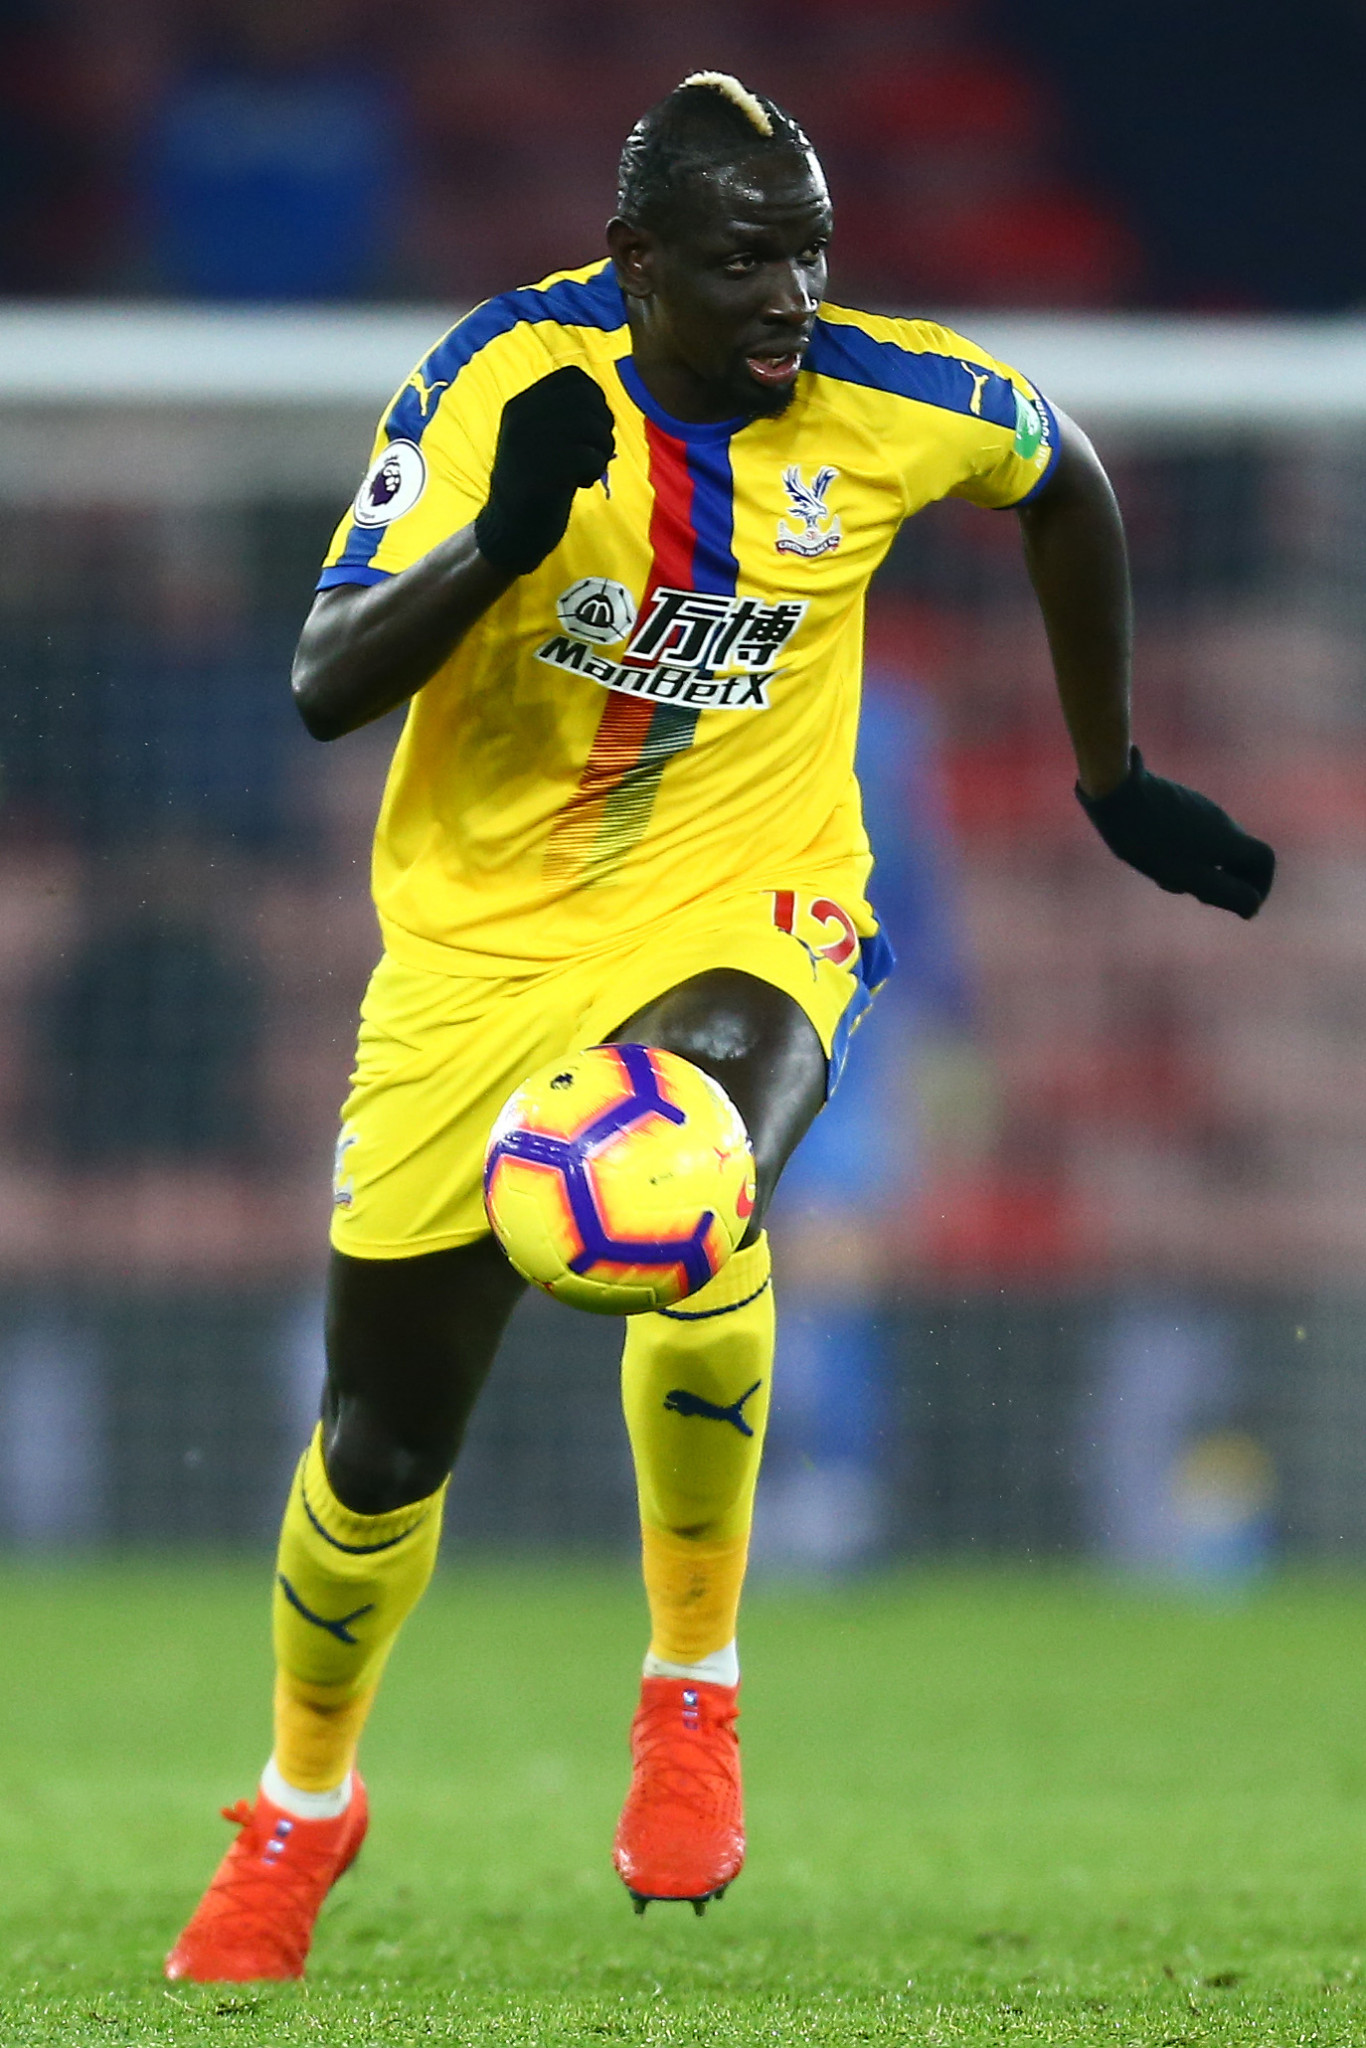 Premier League footballer Sakho sues WADA over claims doping test error ended Liverpool career